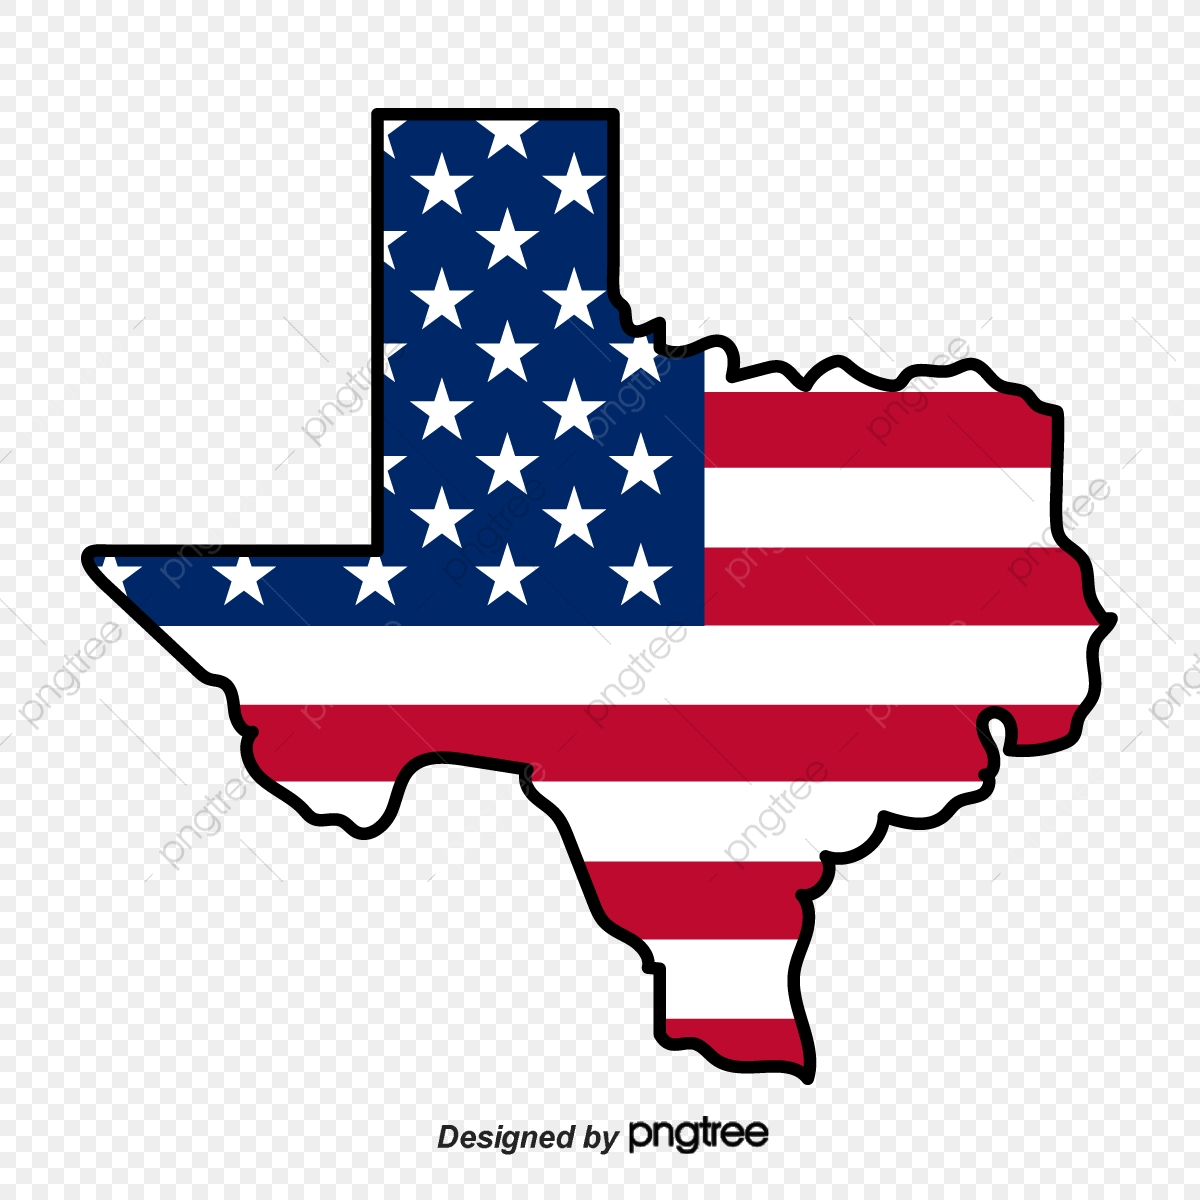 Retro Black Border Texas, Logo, Usa, Map PNG and Vector with ... on colored usa map, navy usa map, wood usa map, simple usa map, clear usa map, customizable usa map, burgundy usa map, complete usa map, accurate usa map, modern usa map, shadow usa map, textured usa map, colorless usa map, rainbow usa map, orange usa map, usa contour map, united states map, empire usa map, small usa map, white usa map,